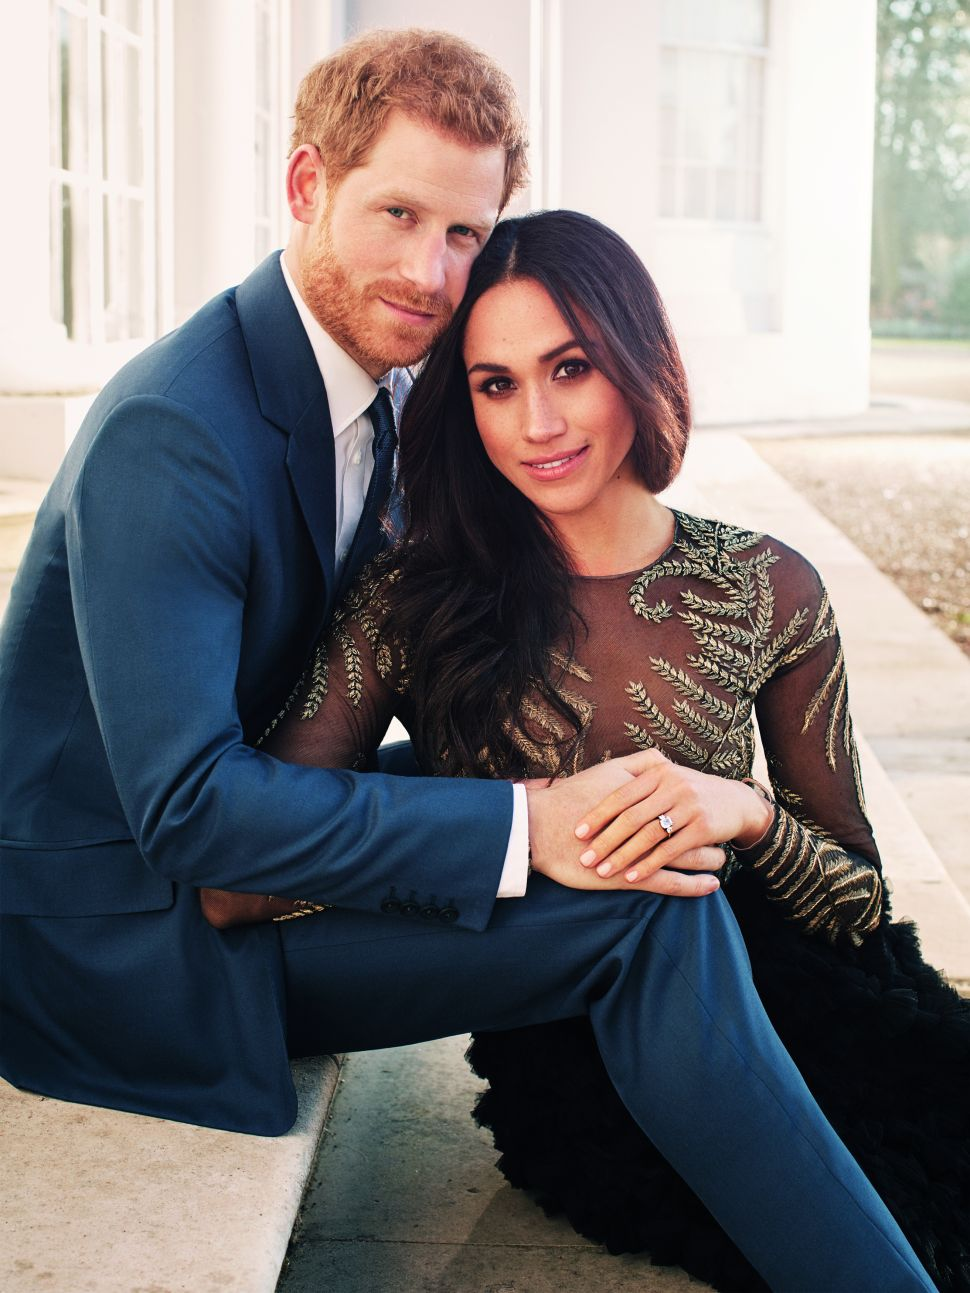 Prince Harry and Meghan Markle's Official Engagement Photos Are Glamour Shots